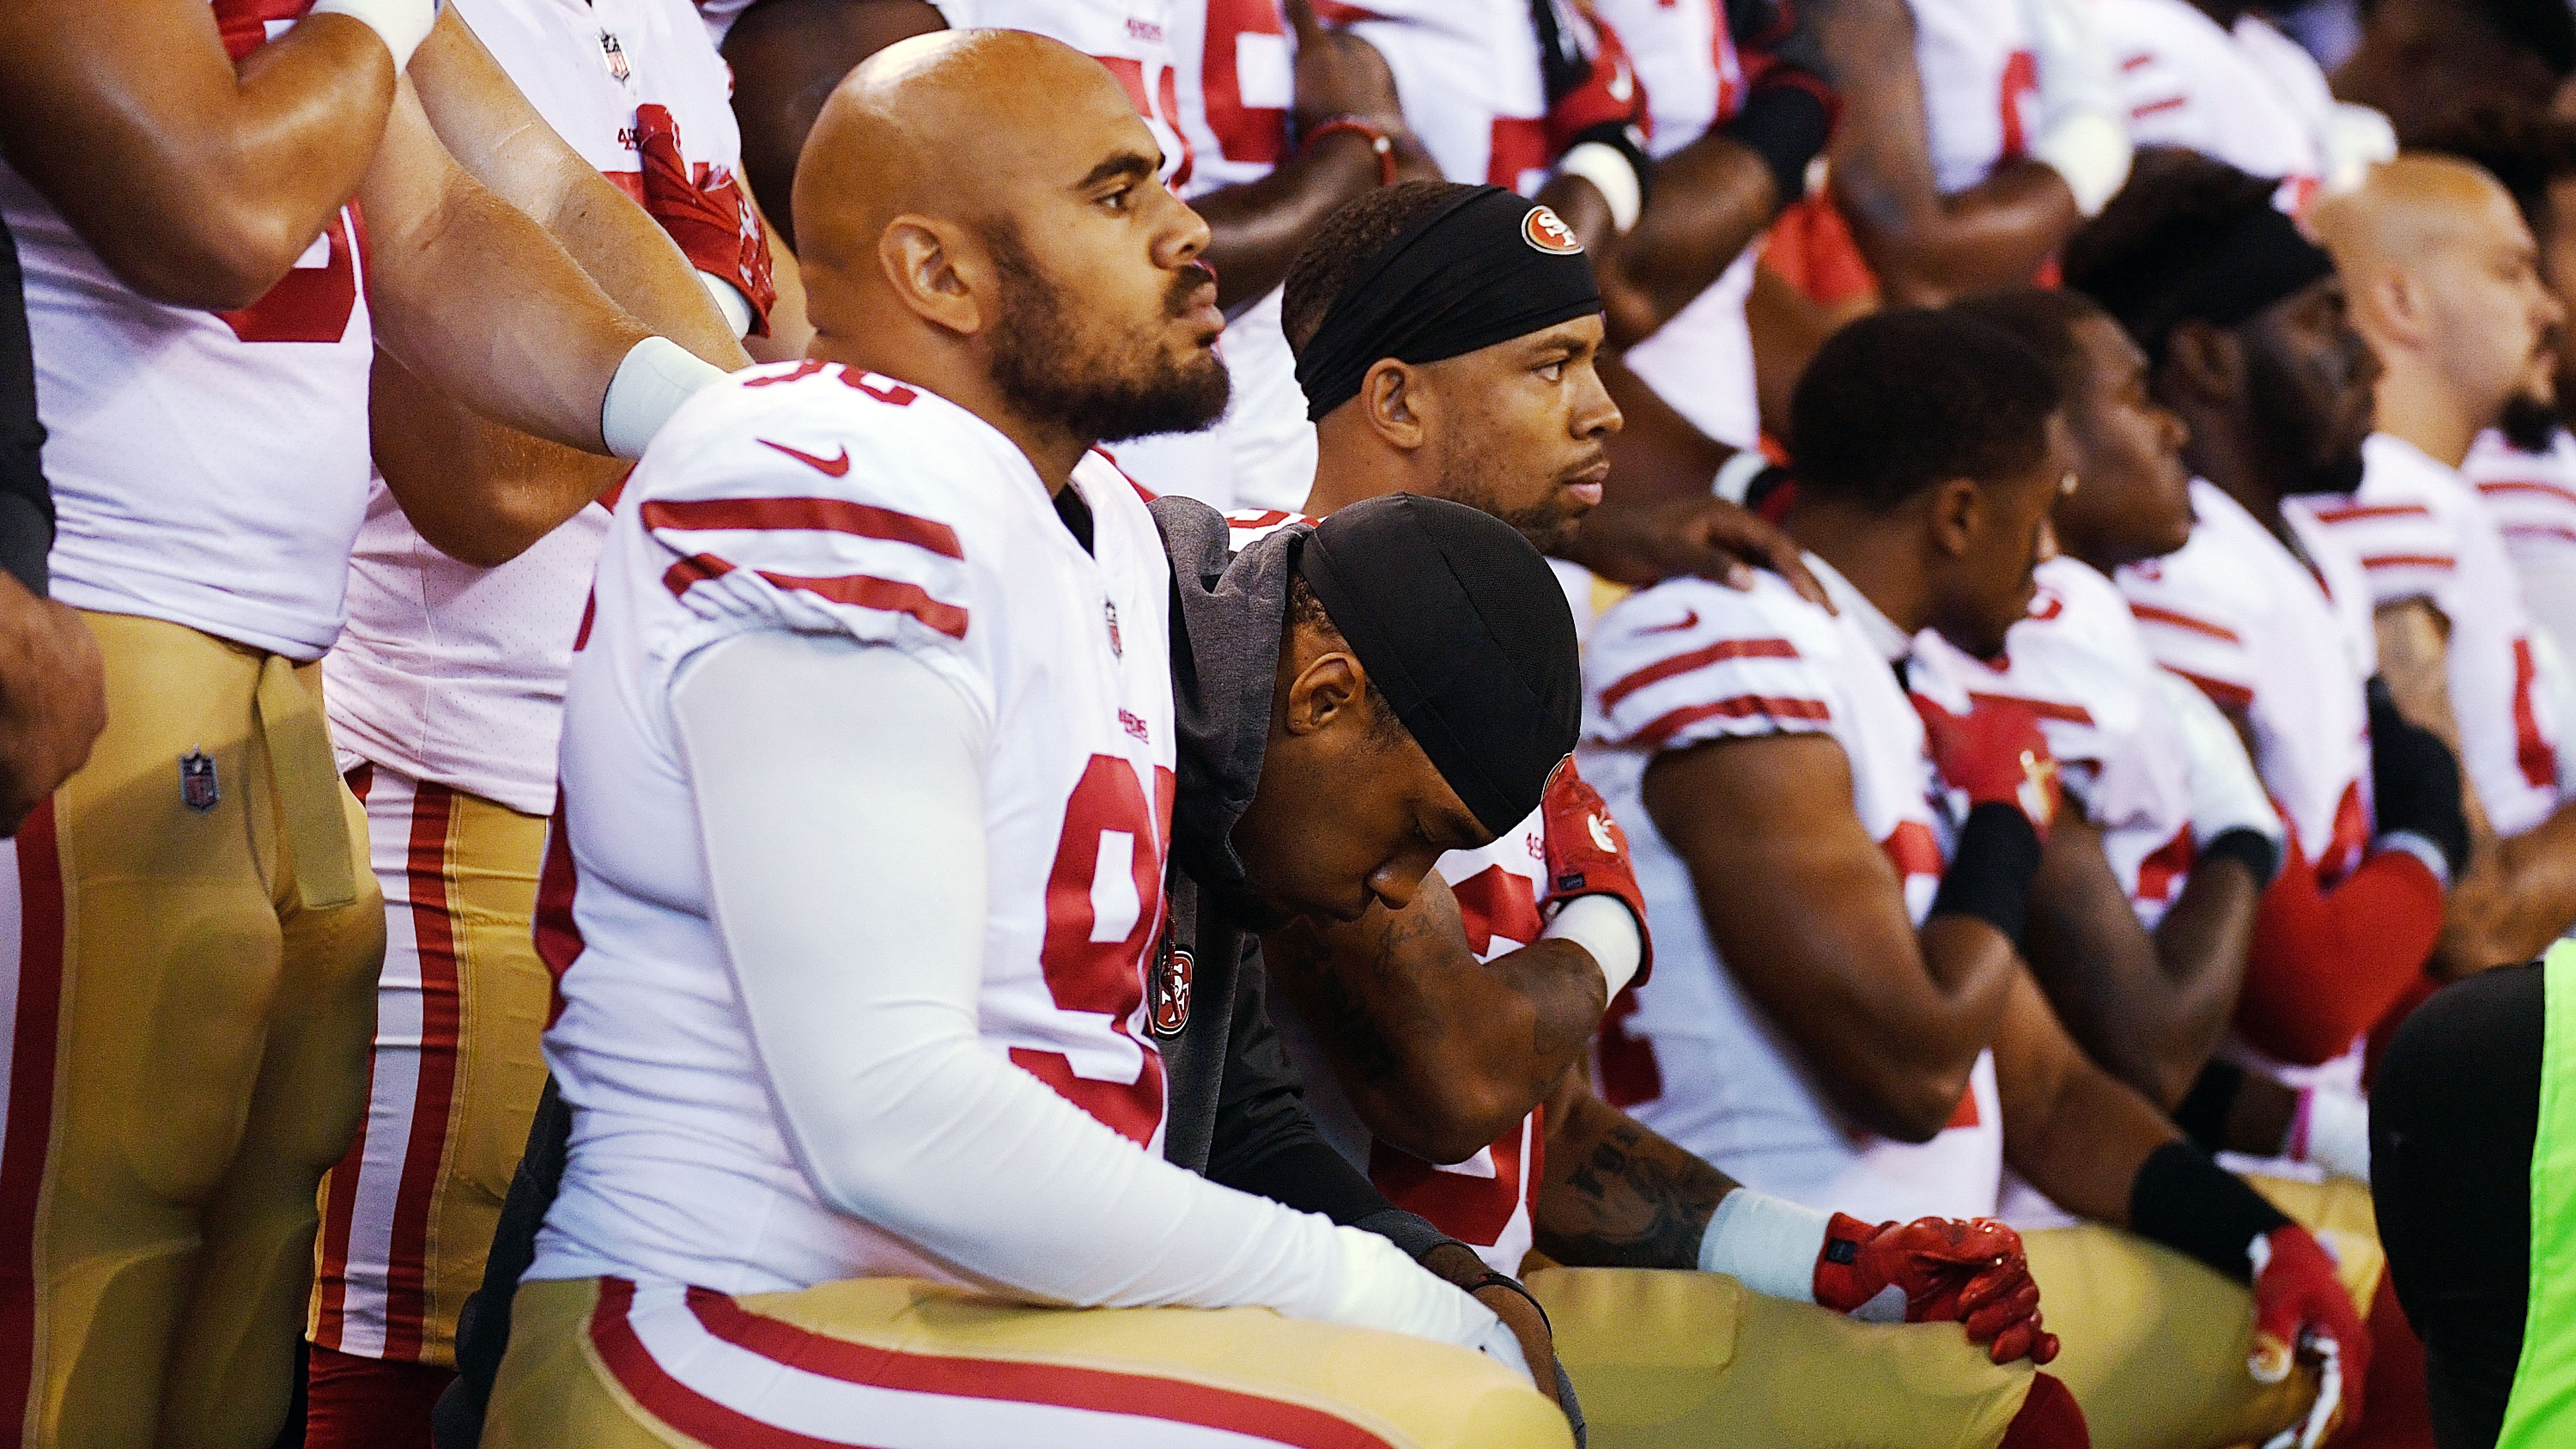 New Is the NFL protest movement stalled because of infighting?